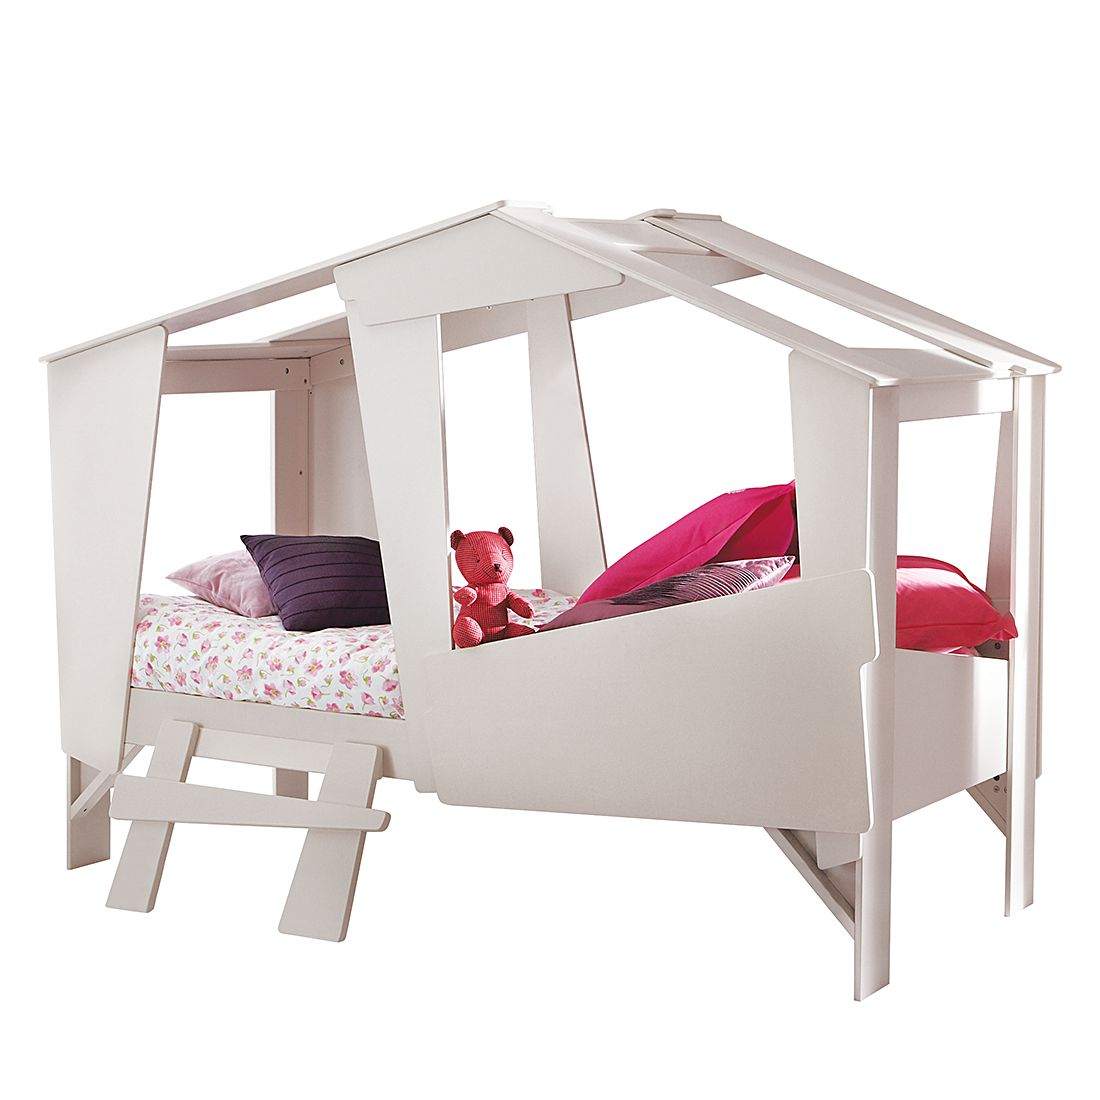 Kids club collection einzelbett – für ein modernes kinderzimmer ...